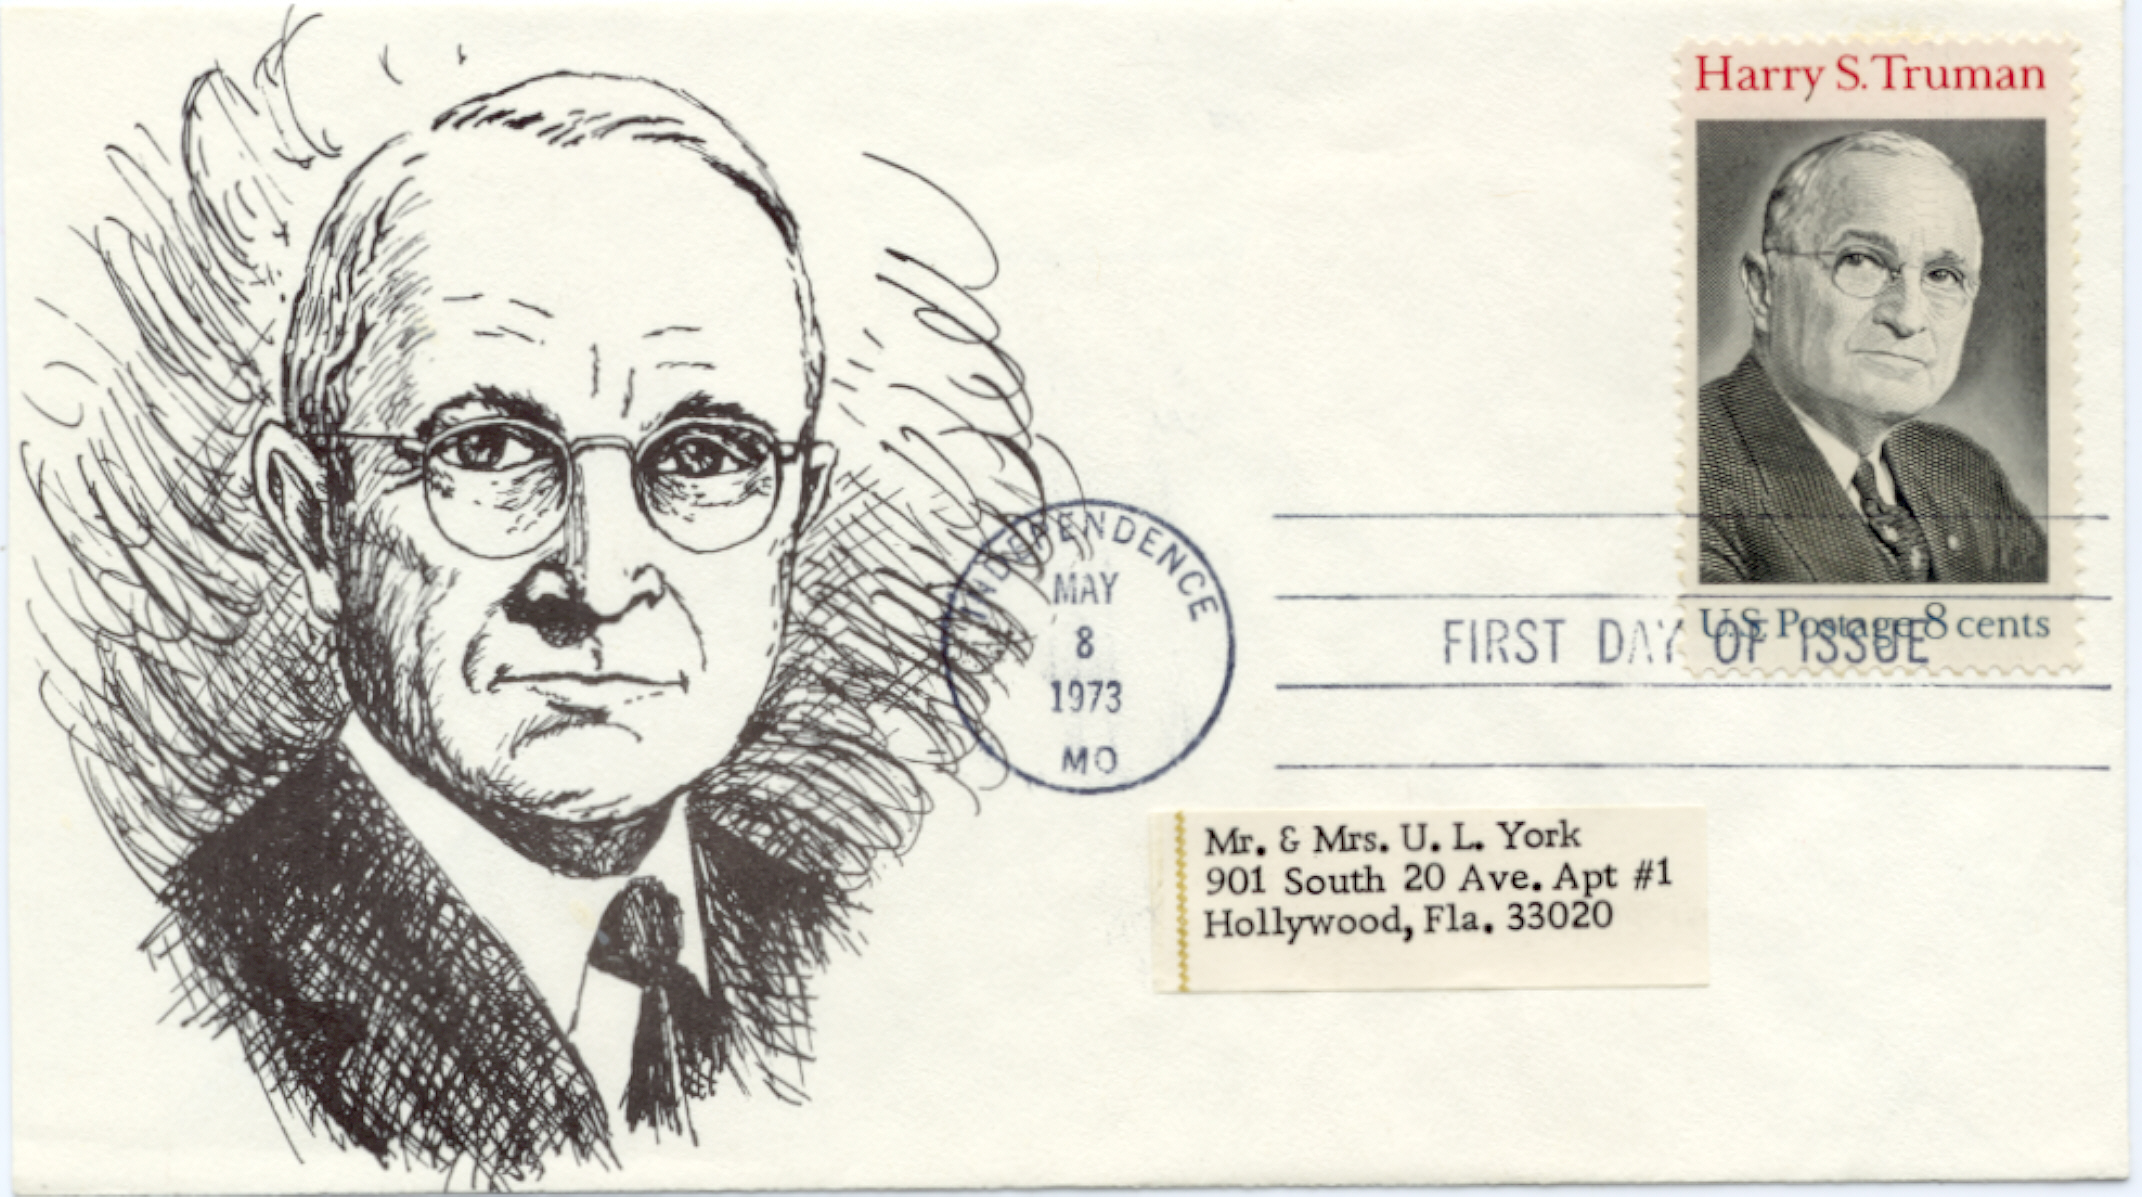 HST Memorial FDC #17